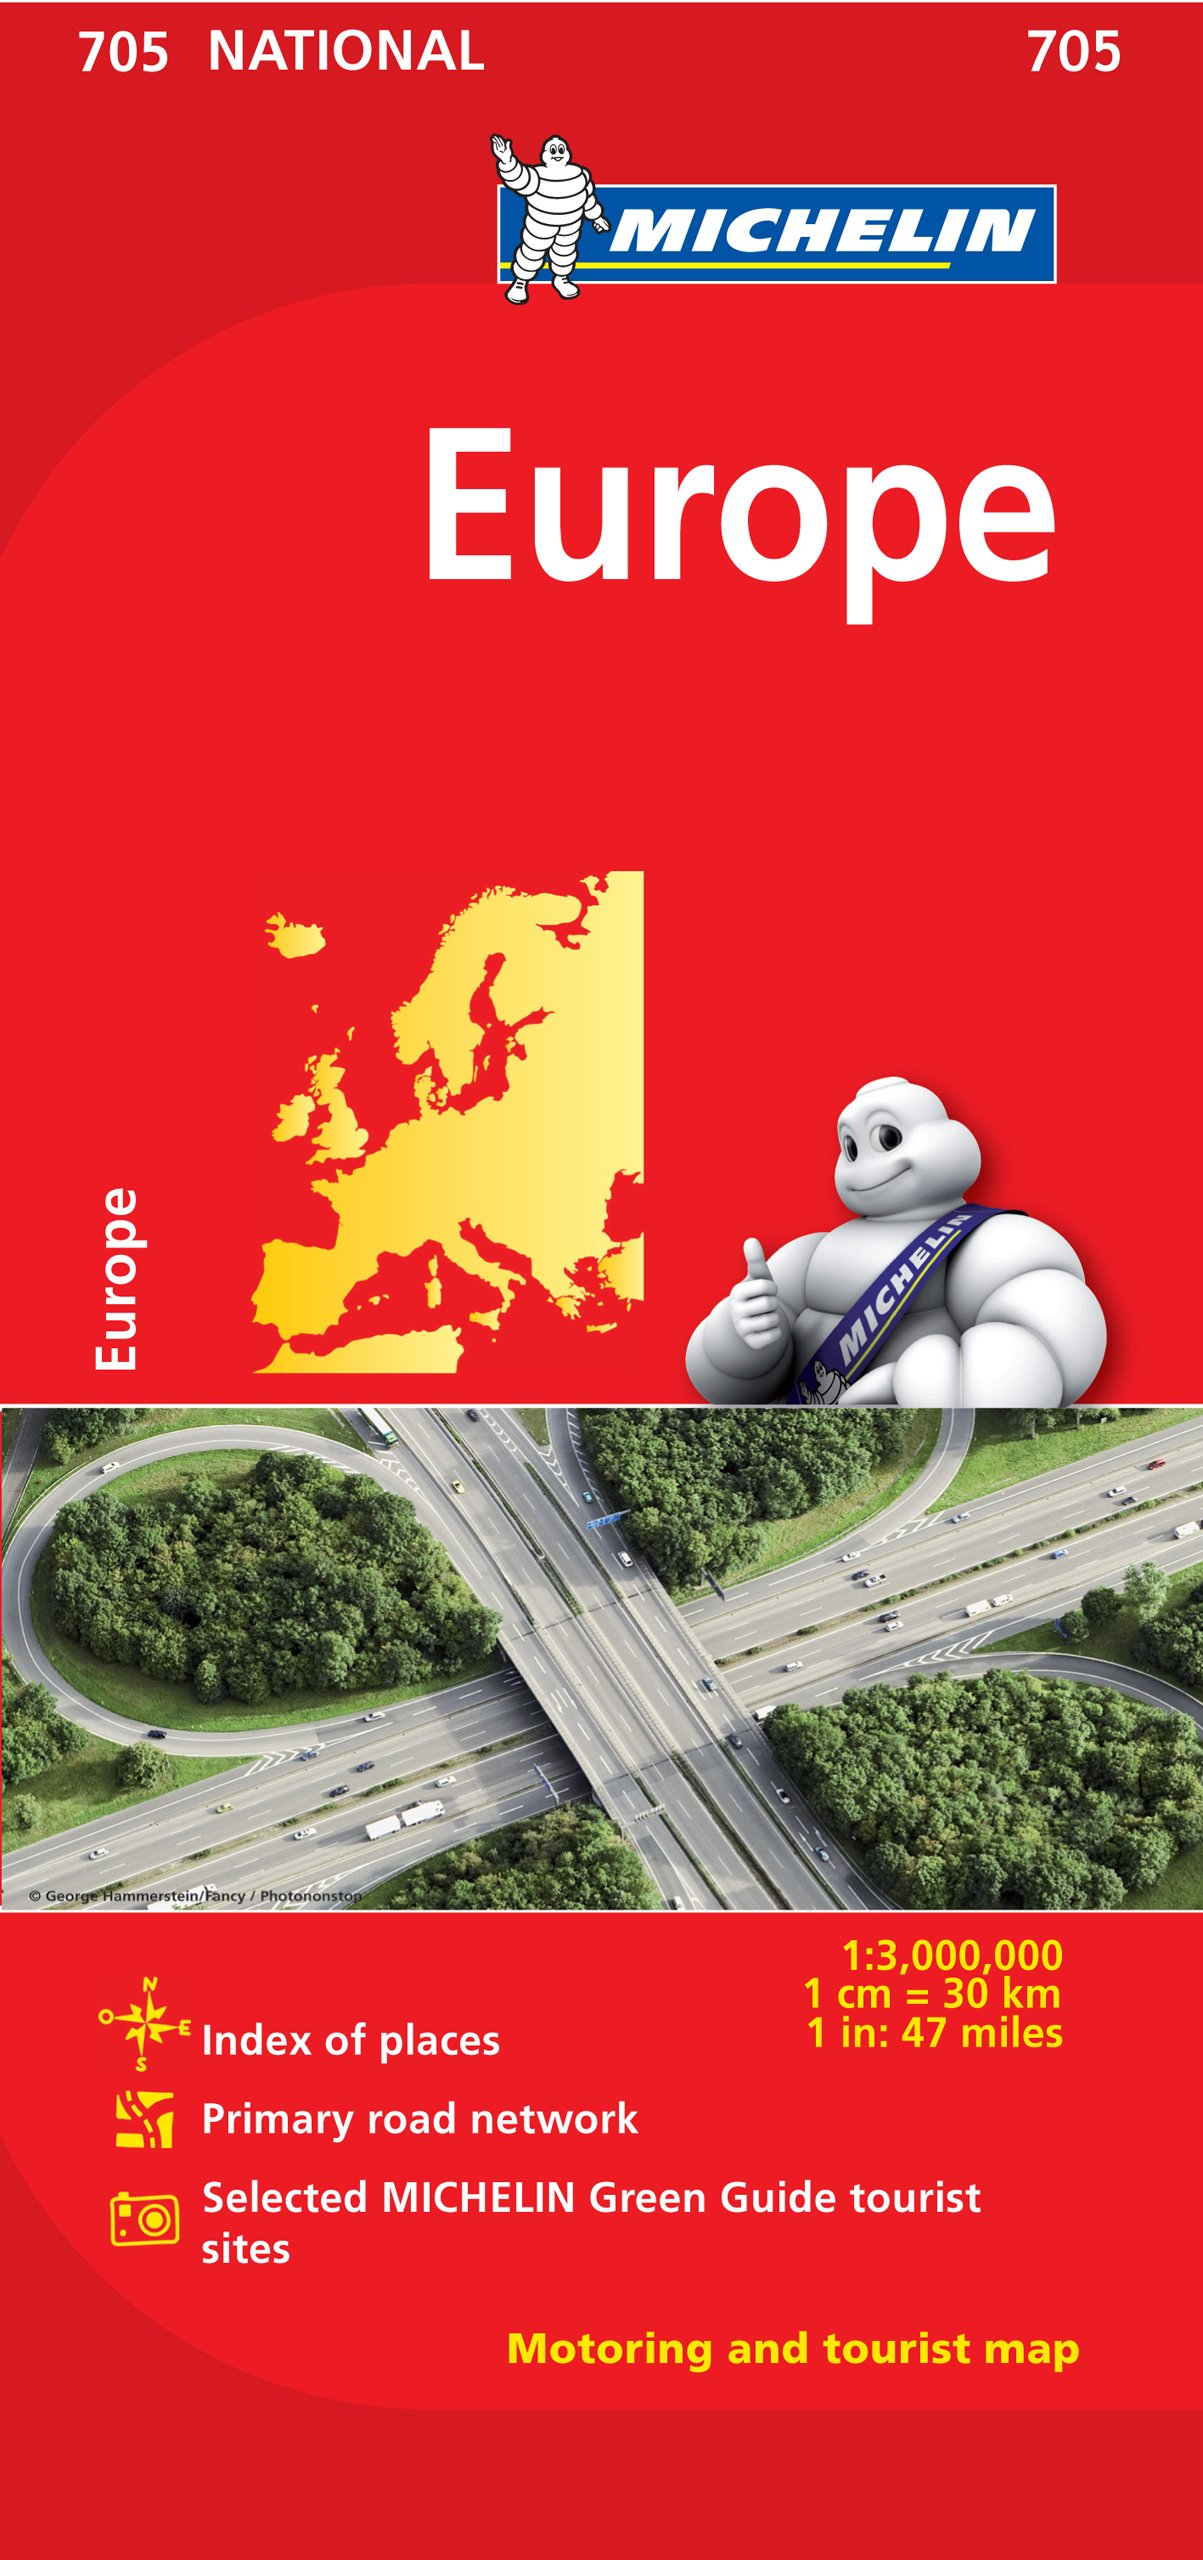 Buy Michelin Europe Map 705 Michelin Maps Book Online At Low